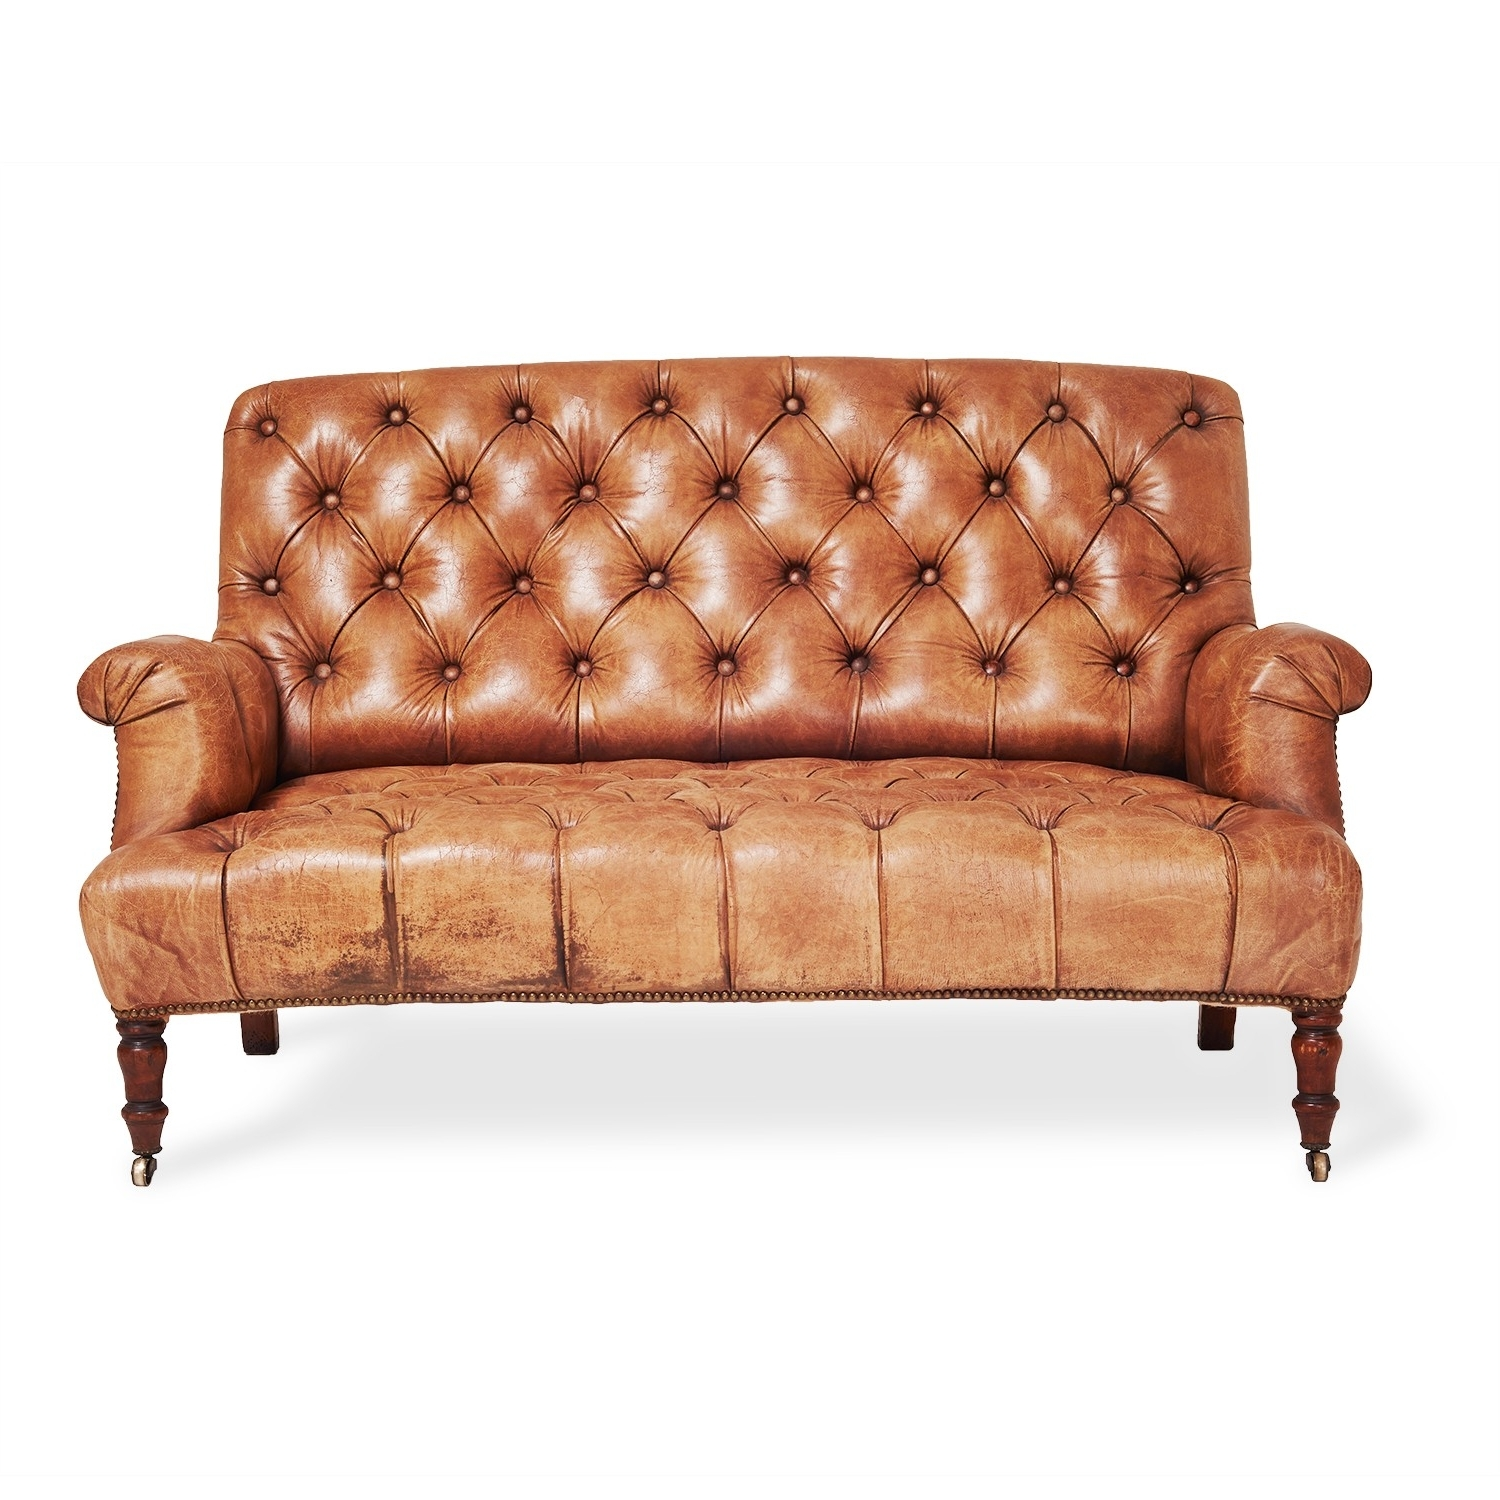 Furniture 2 Seater Brown Leather Tufted Sofa With Wooden Legs For Regarding Most Recently Released Affordable Tufted Sofas (View 4 of 20)